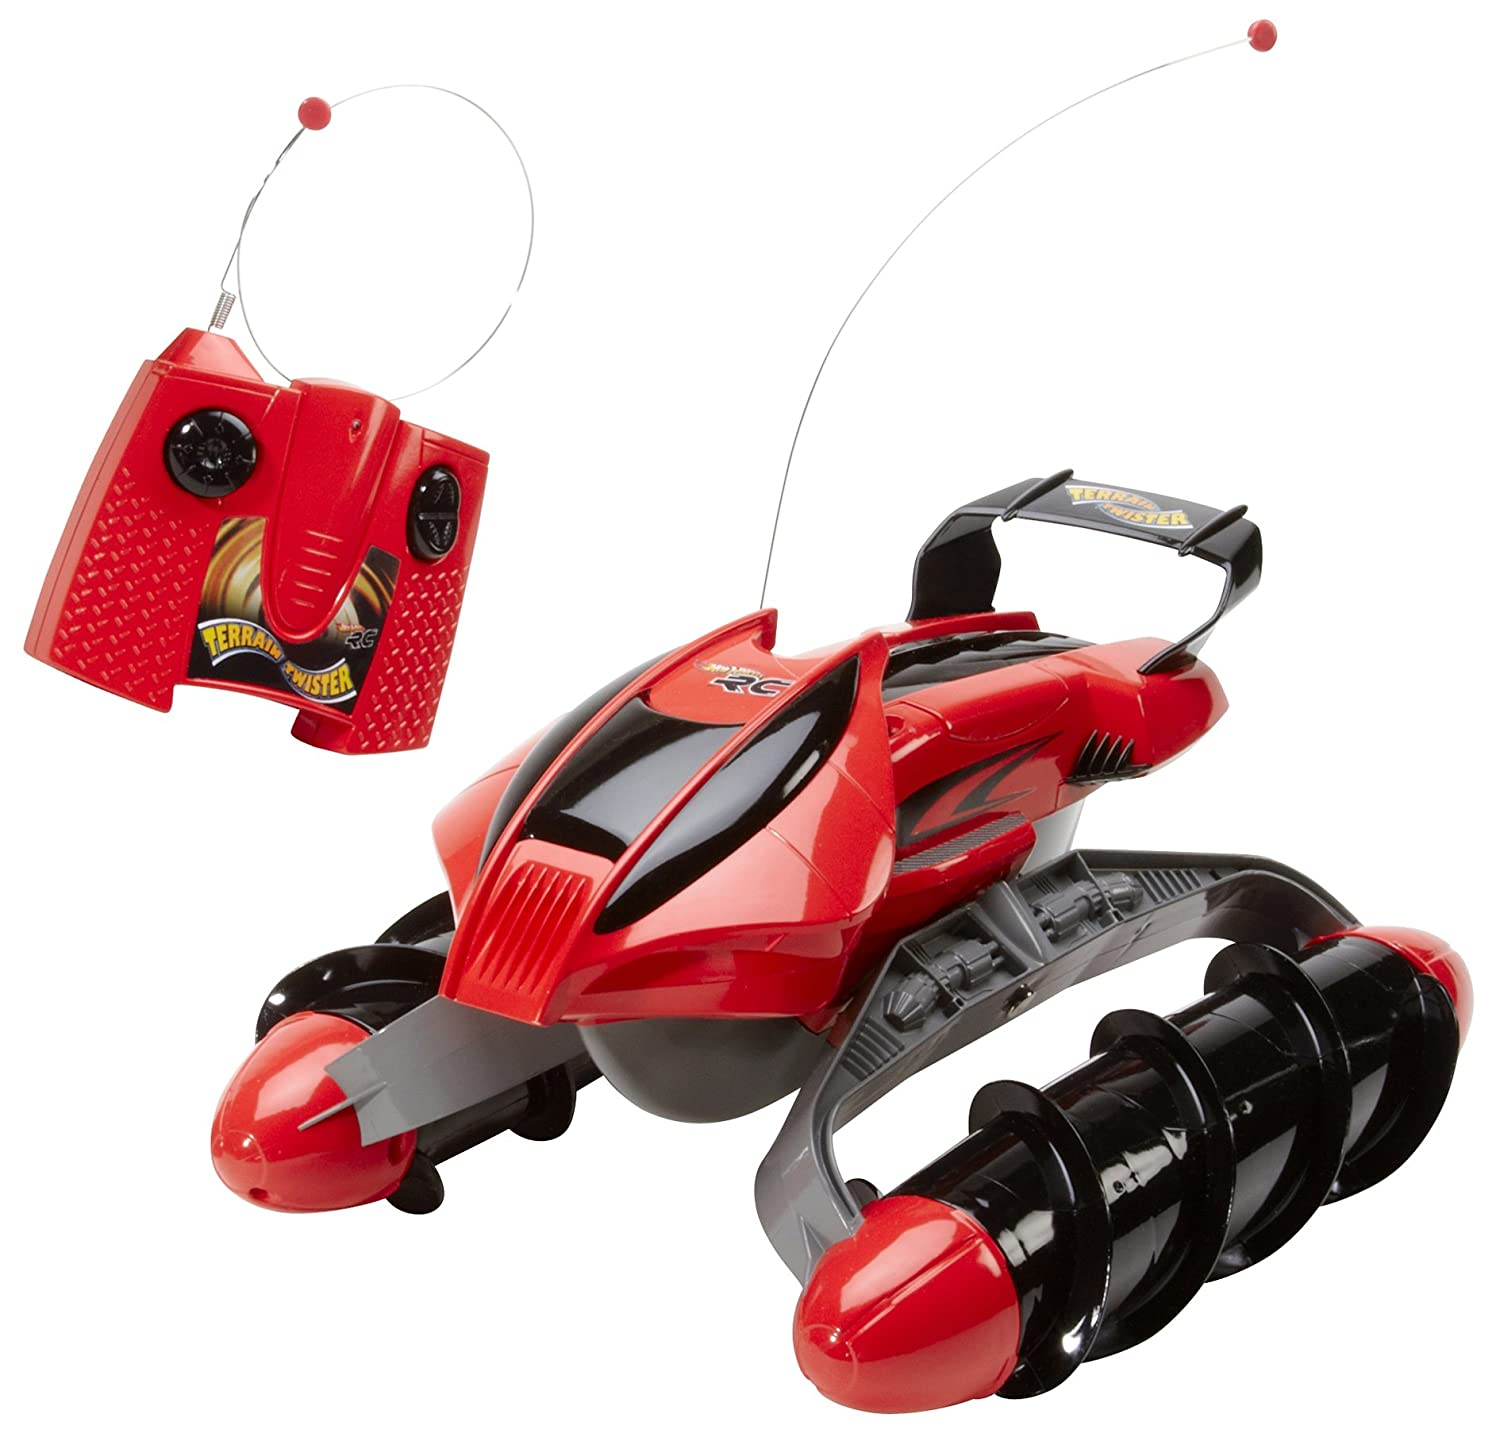 hot wheels rc cars walmart with 141057426159 on My Nano Tank further Watch additionally Intro 44 moreover Ja Rule Pleads Guilty To Tax Evasion Then Moves Onto 50 Twitterbeef further Cars For Kids Toddlers Racing.